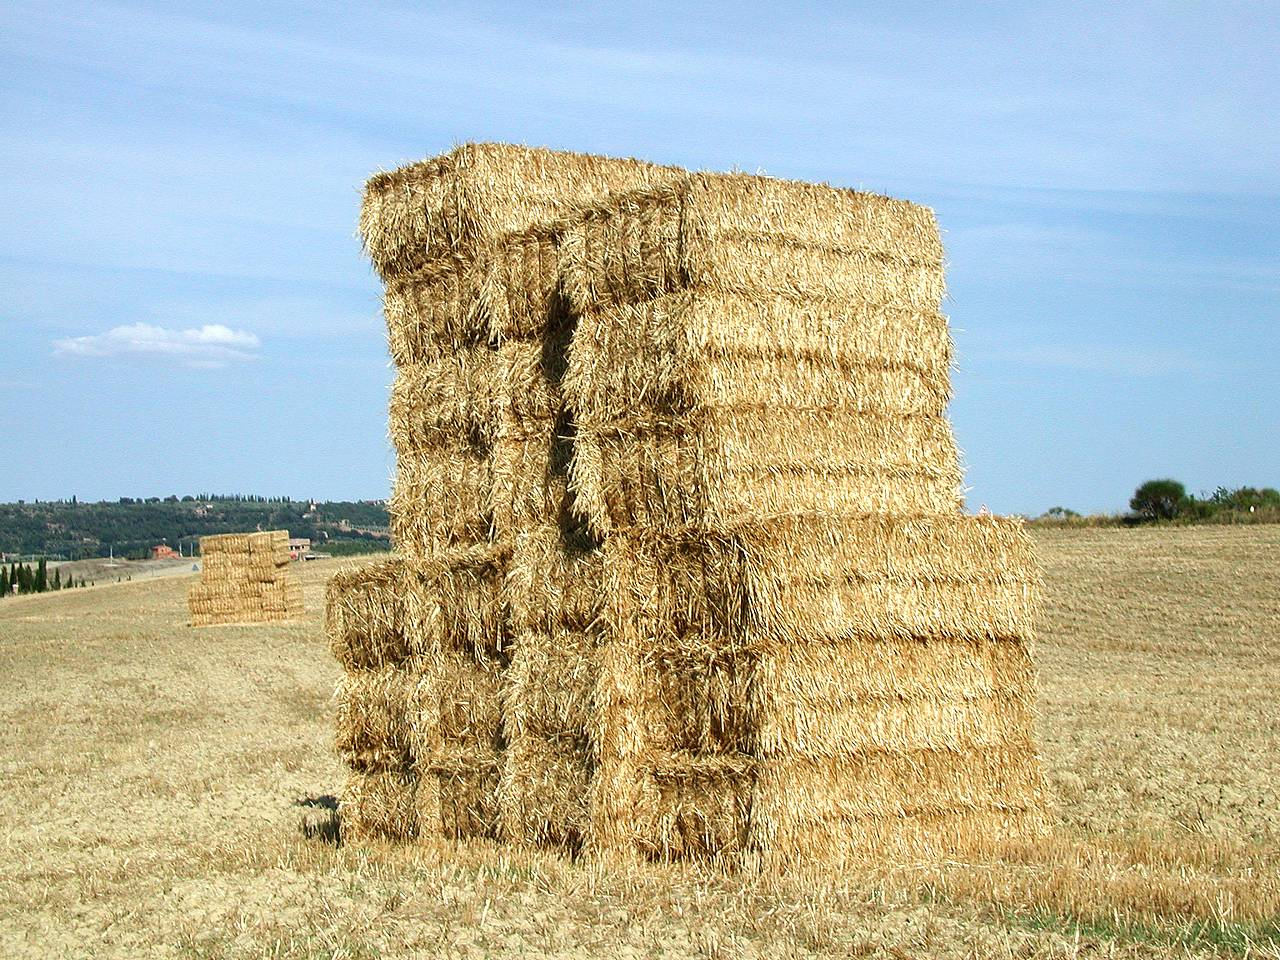 With winter approaching, most livestock producers have already purchased winter hay supplies, but did they purchase enough hay that meets the nutritional ...